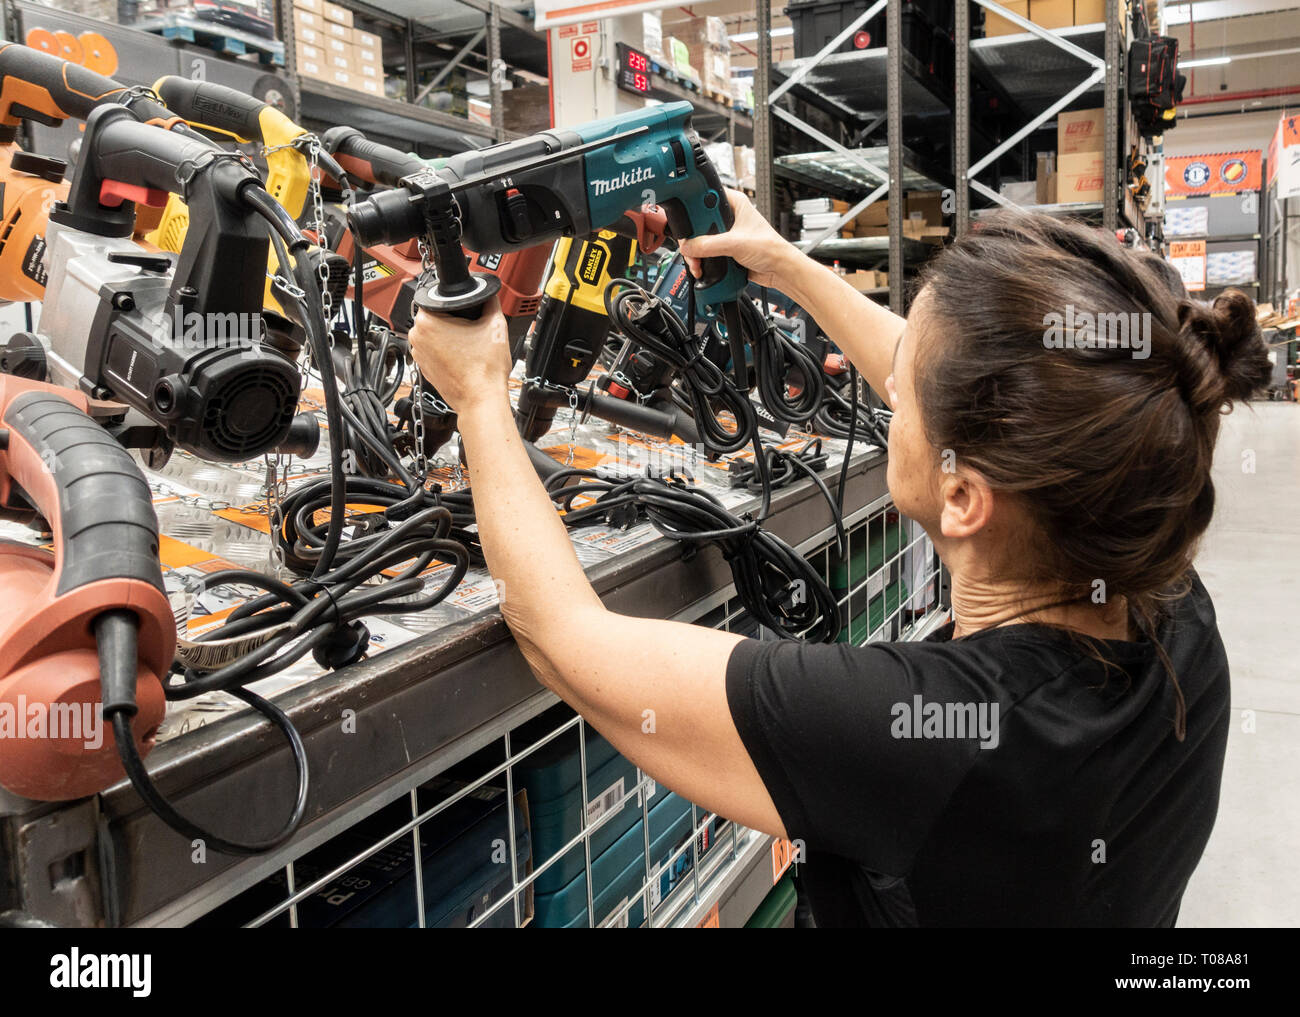 Mature woman holding power tool in DIY store. - Stock Image